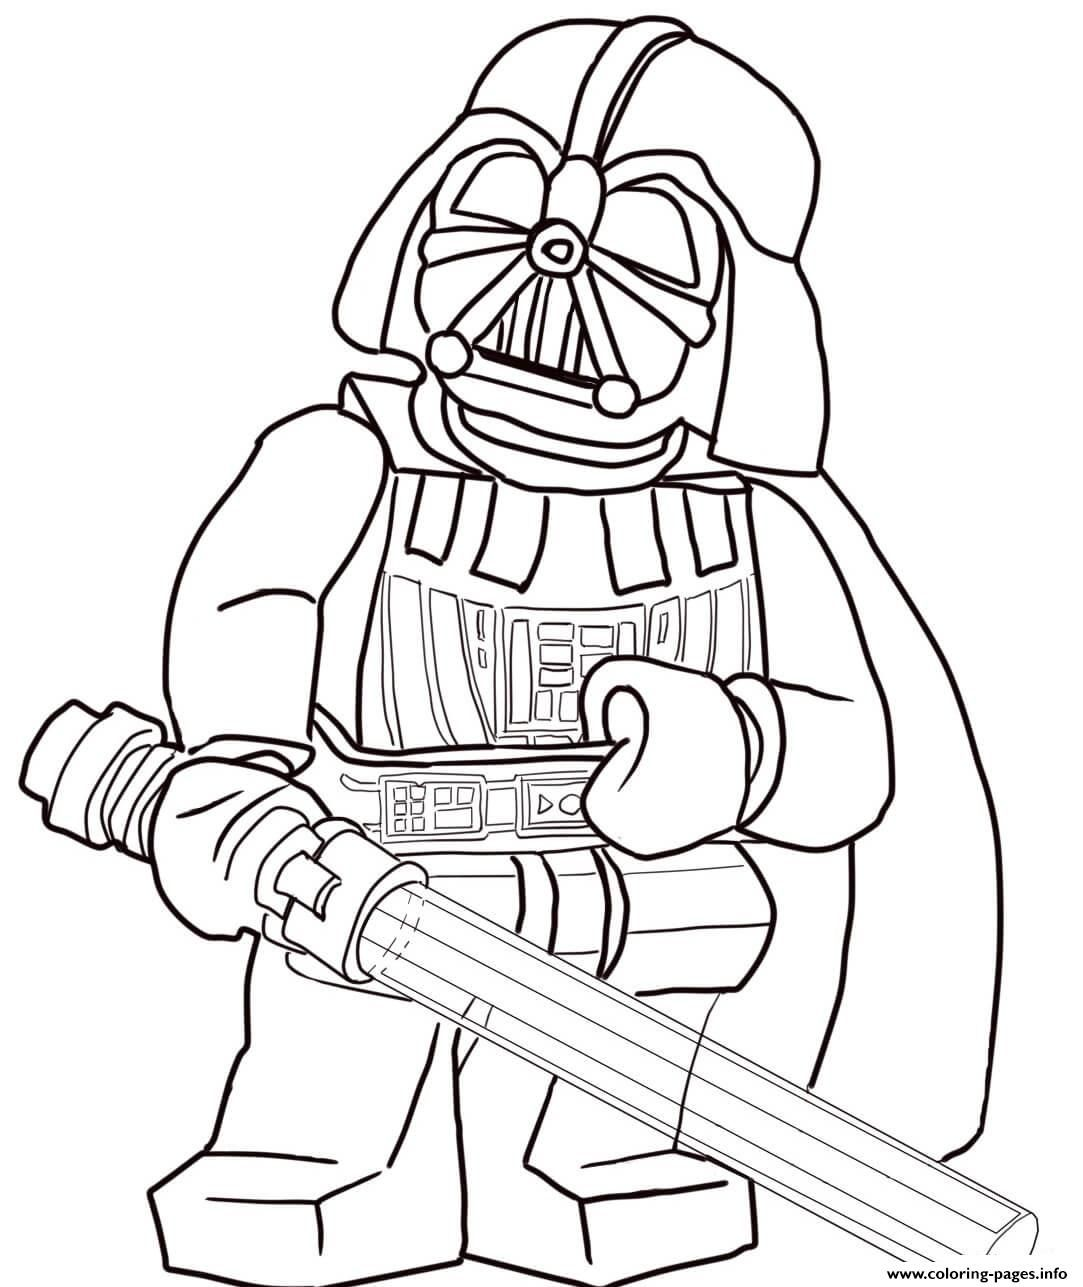 Print Lego Star Wars Darth Vader Coloring Pages Coloring Sheets